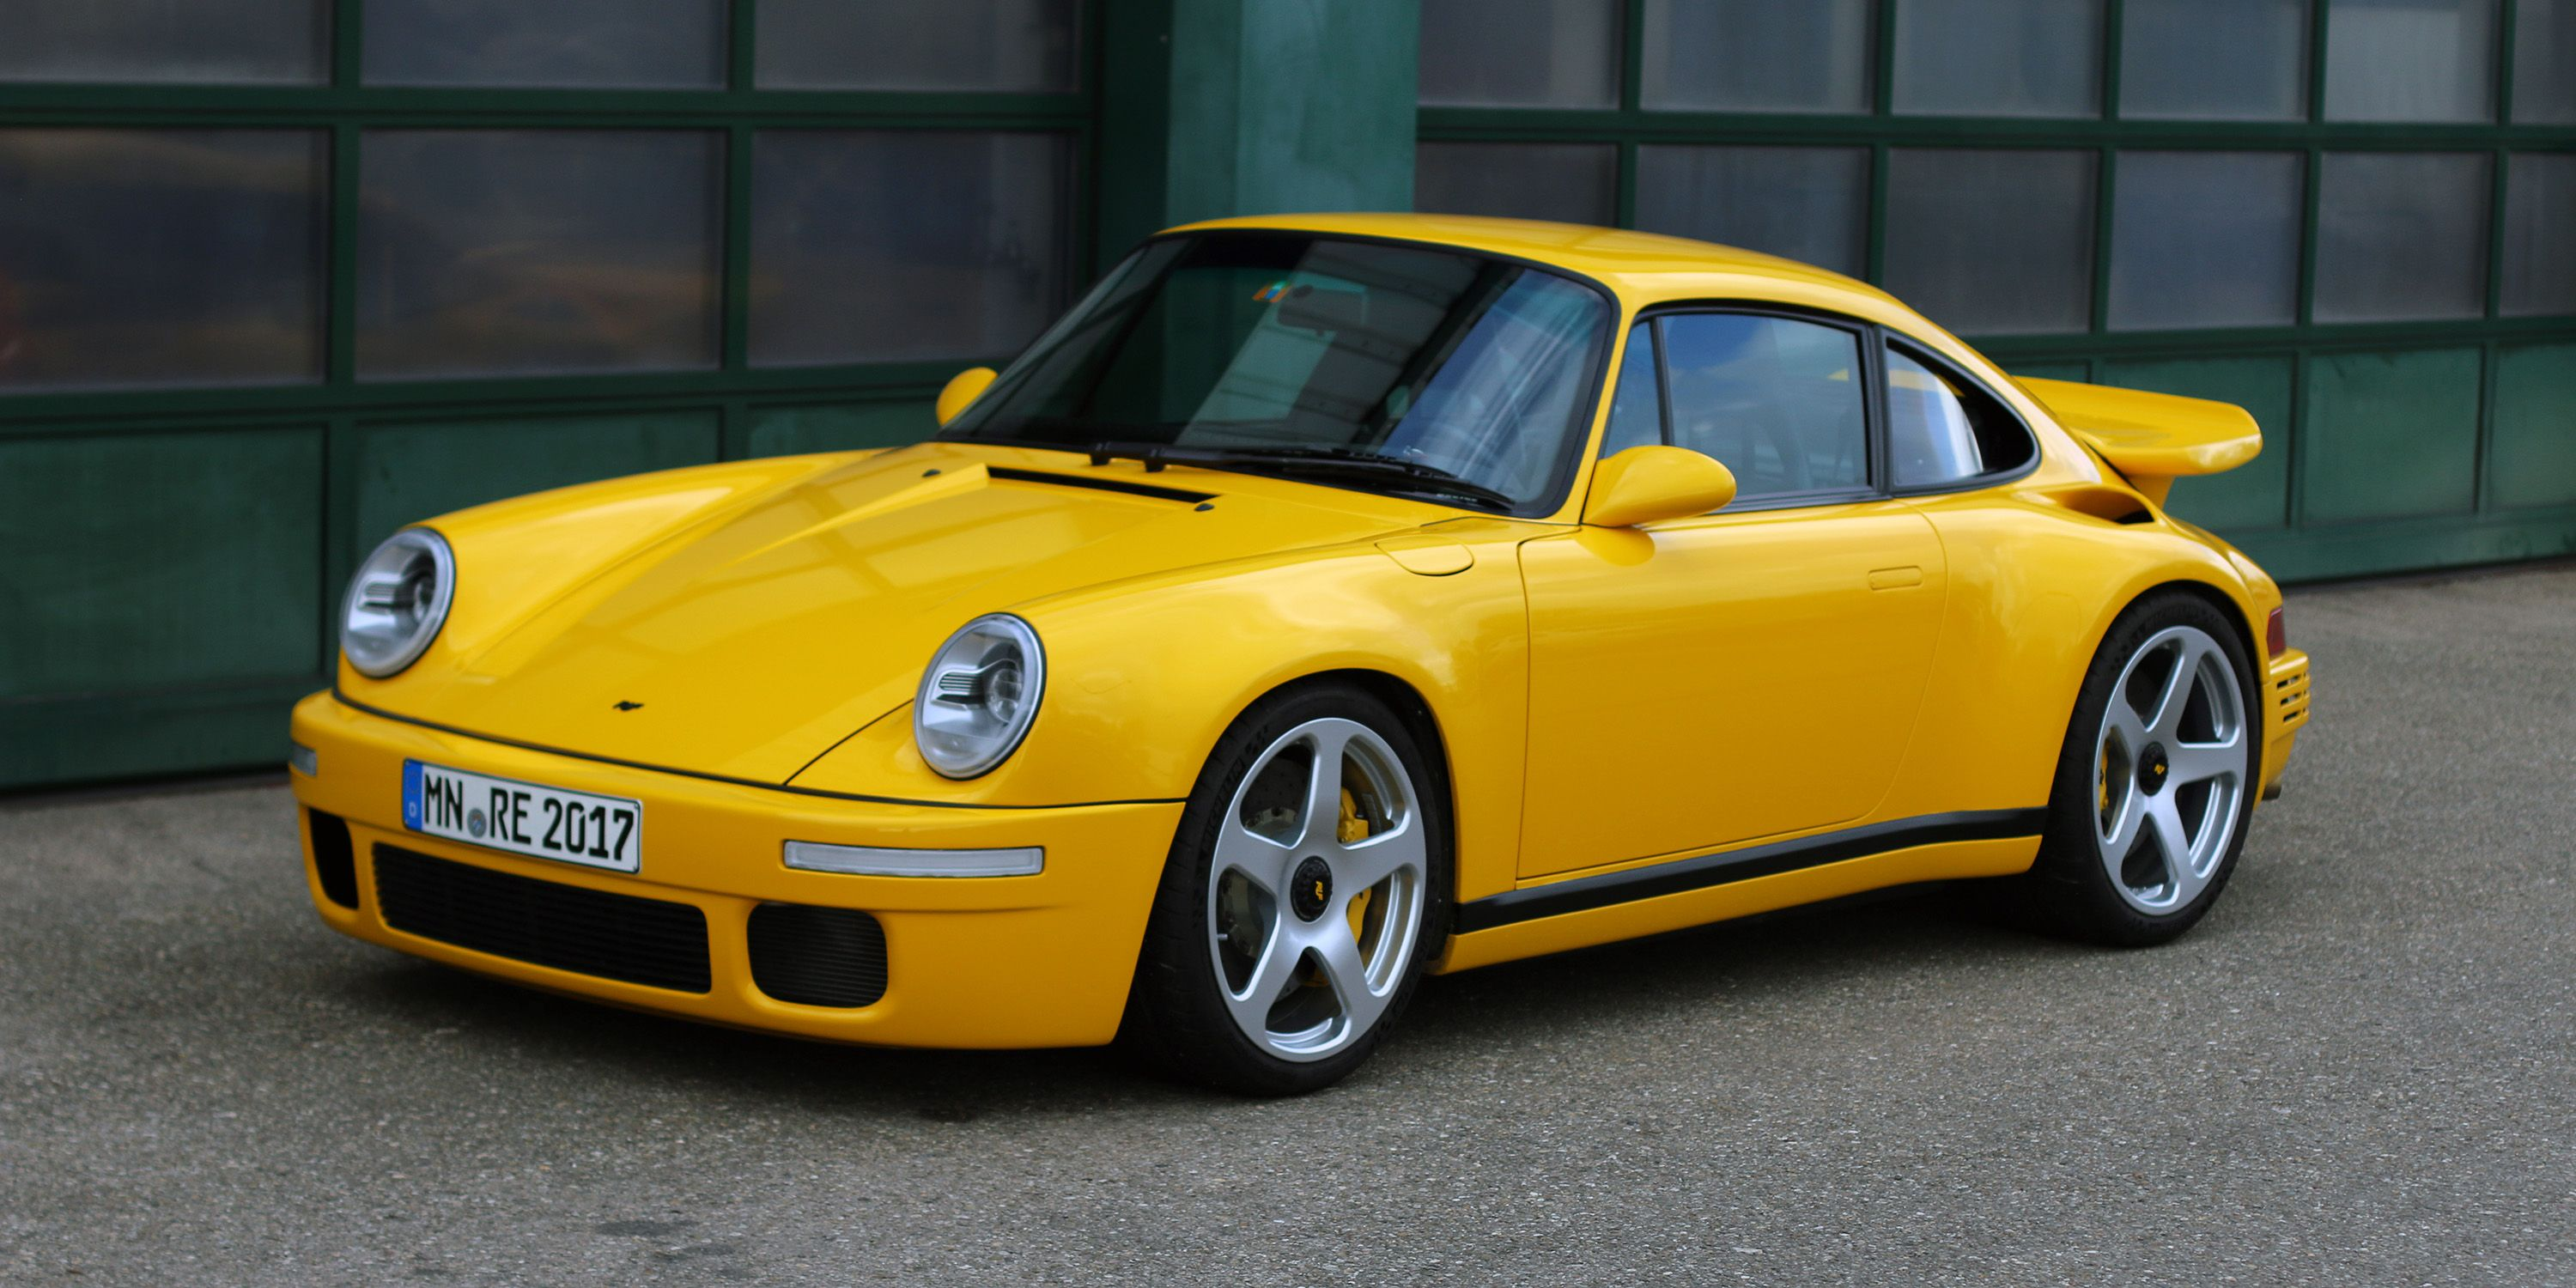 Phenomenal Rufs New Chassis Changes Everything In The Custom Porsche World Wiring Database Pengheclesi4X4Andersnl